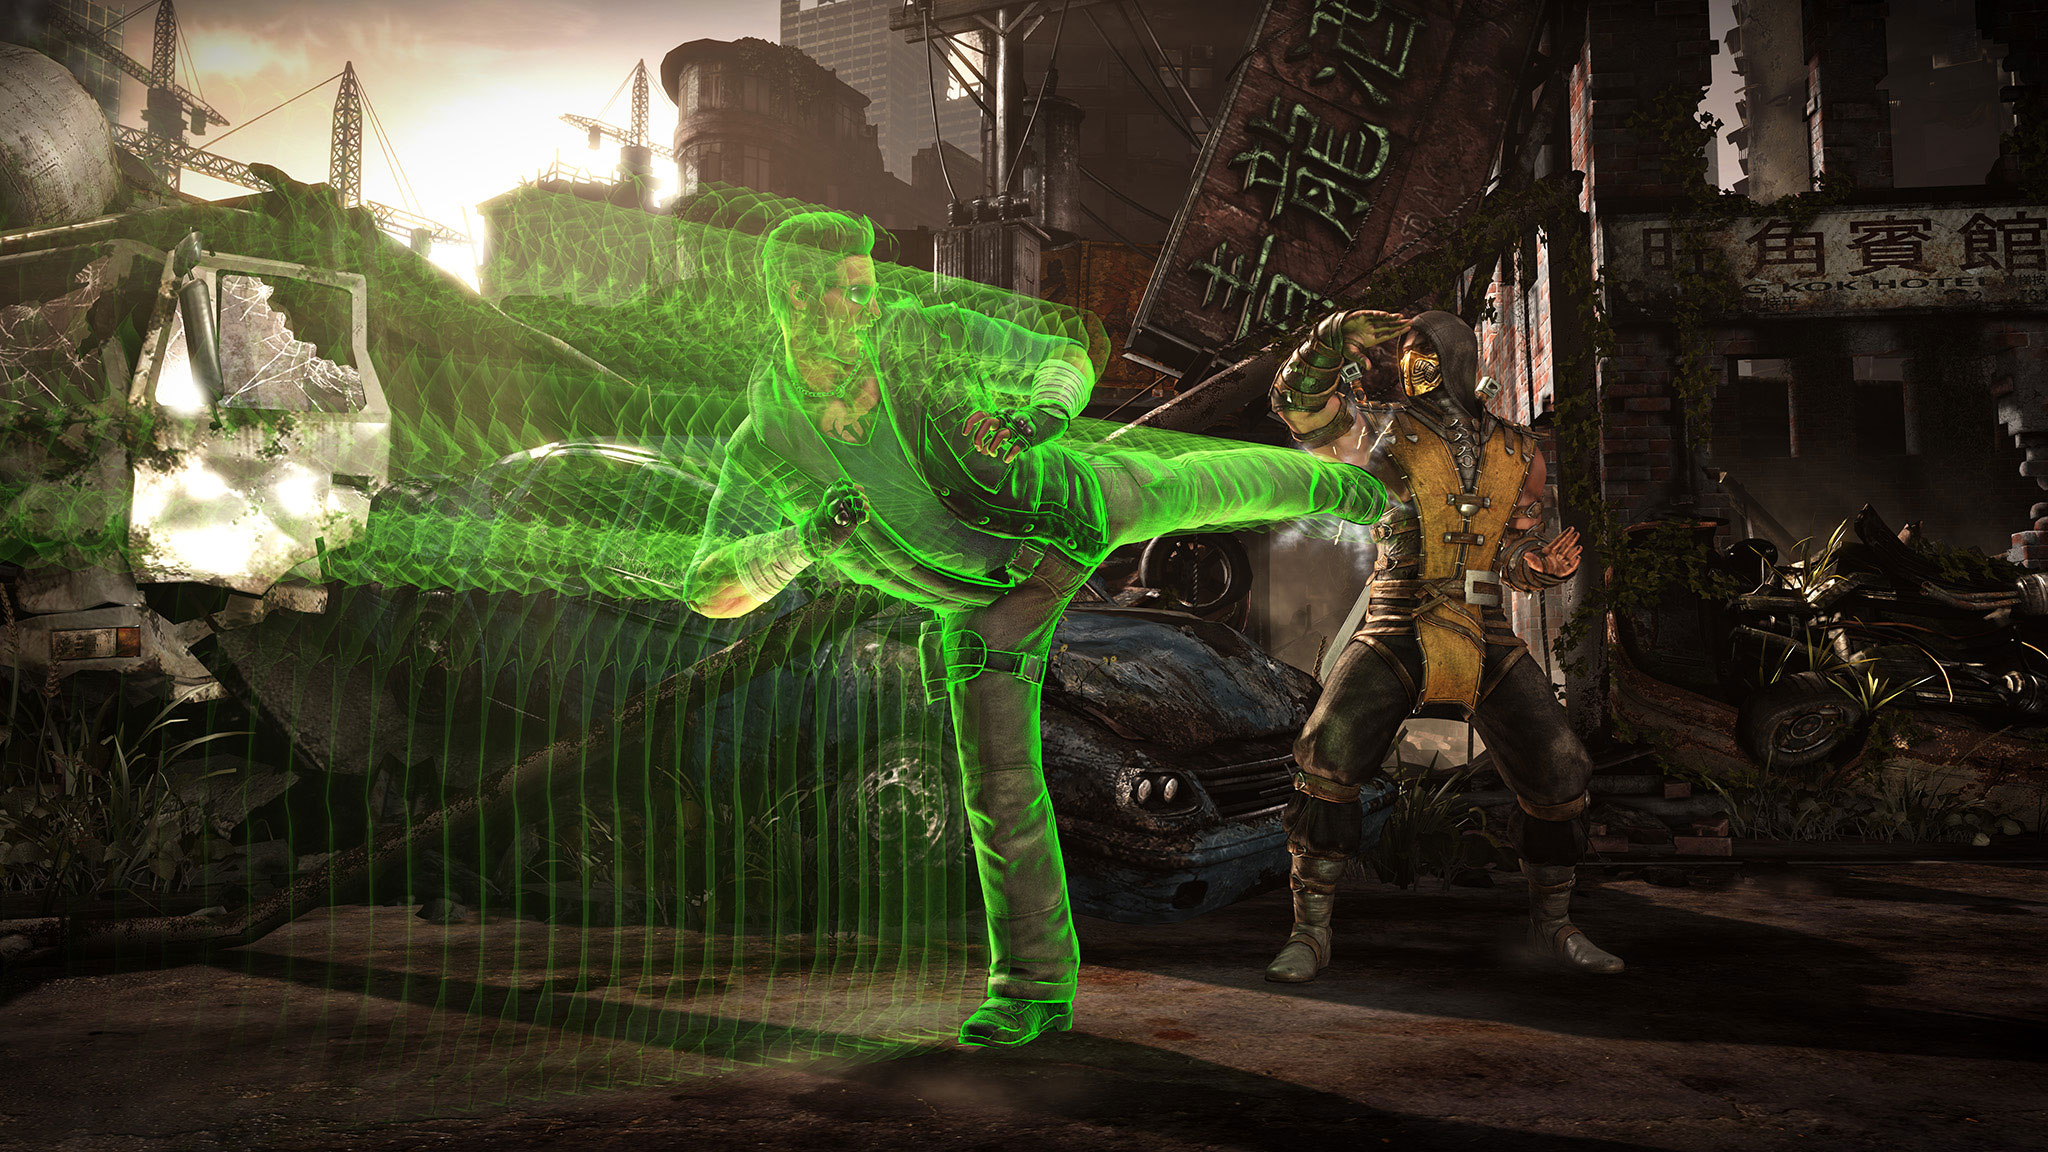 Mortal Kombat X Johnny Cage And Sonya Blade Trailer Sneaks In A Third Character Reveal #32633